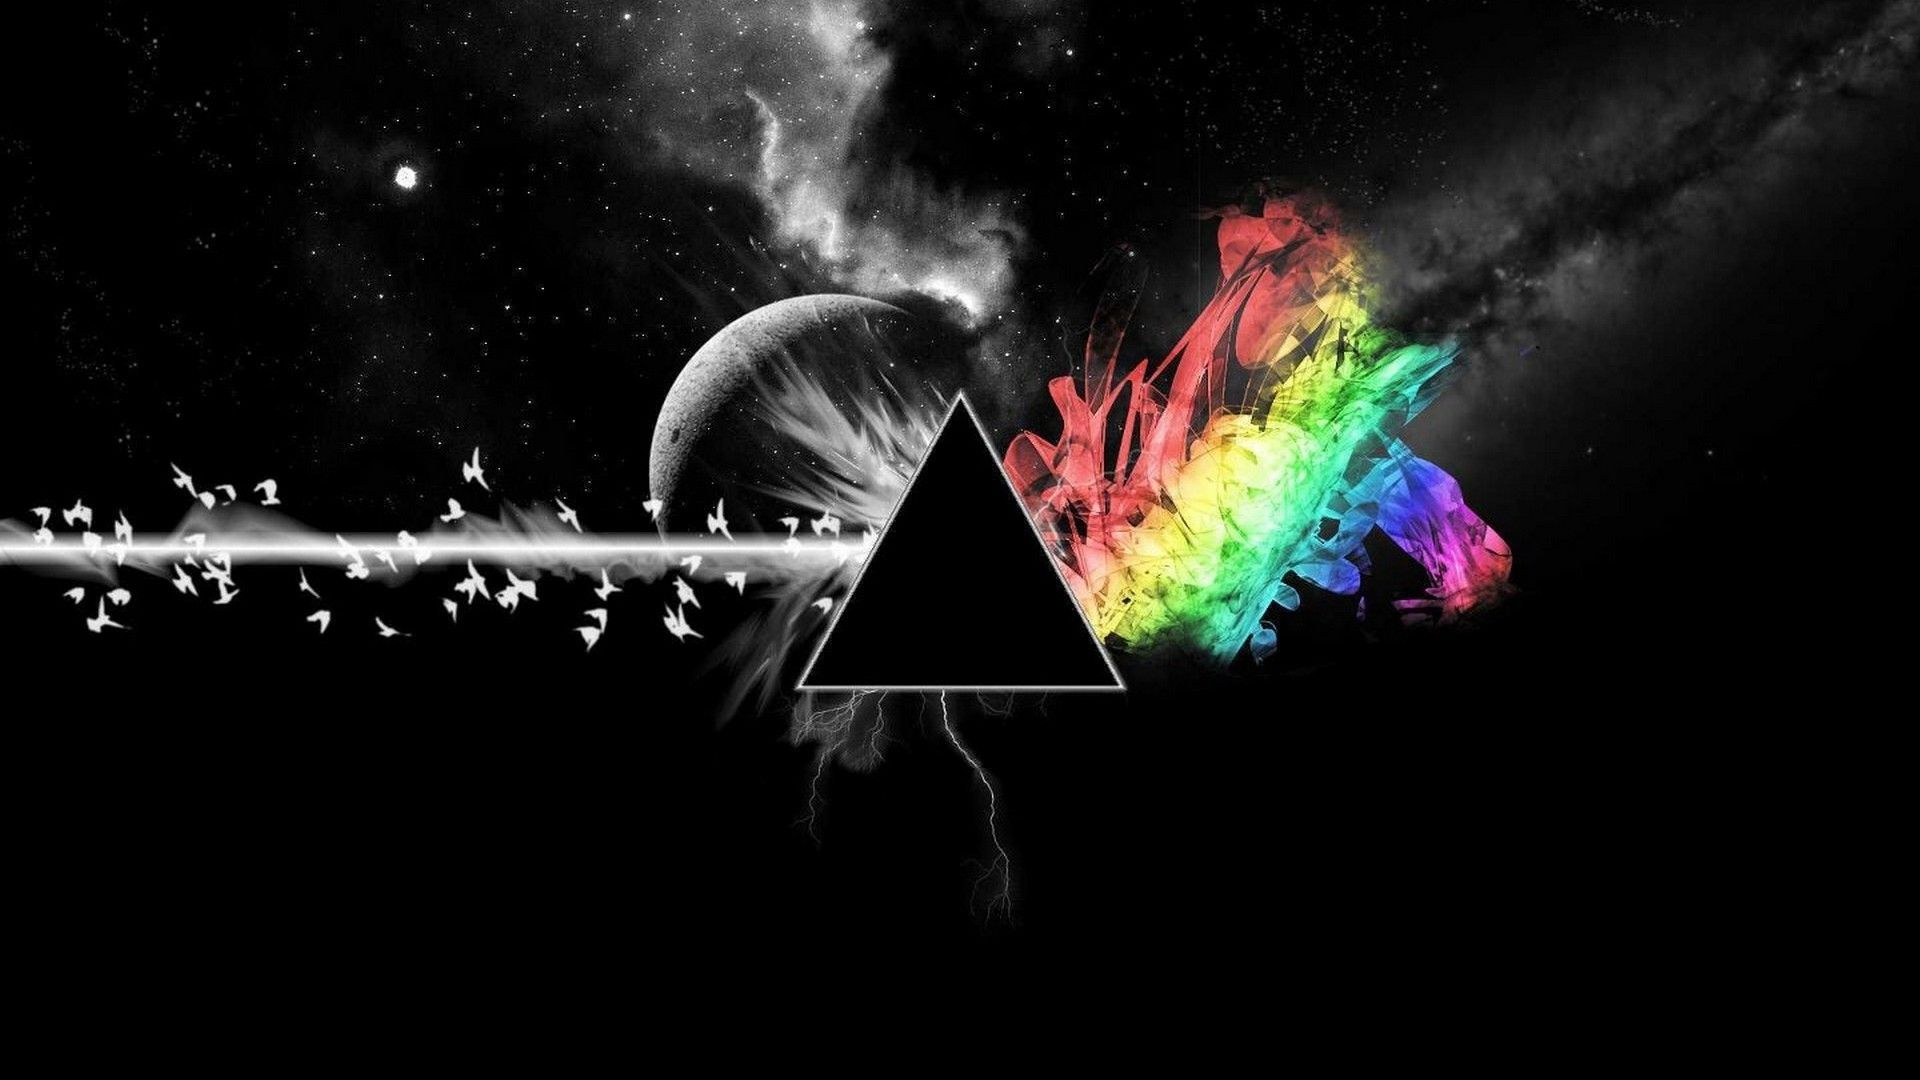 Coolest Hd Wallpapers 1920x1080